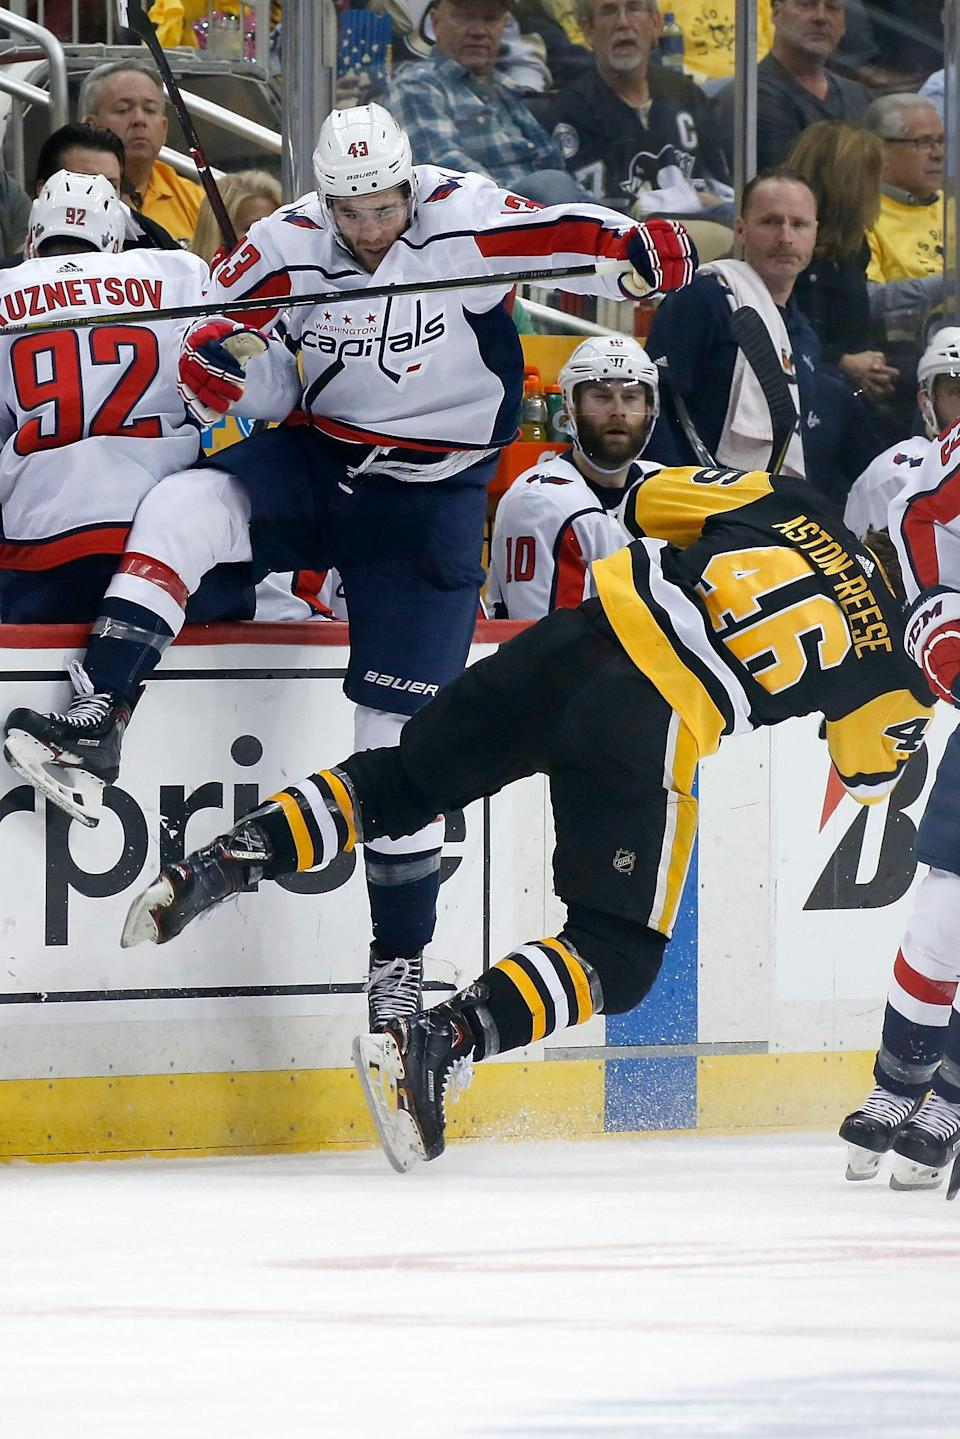 Tom Wilson earned a suspension for this hit on Zach Aston-Reese in May 2018.